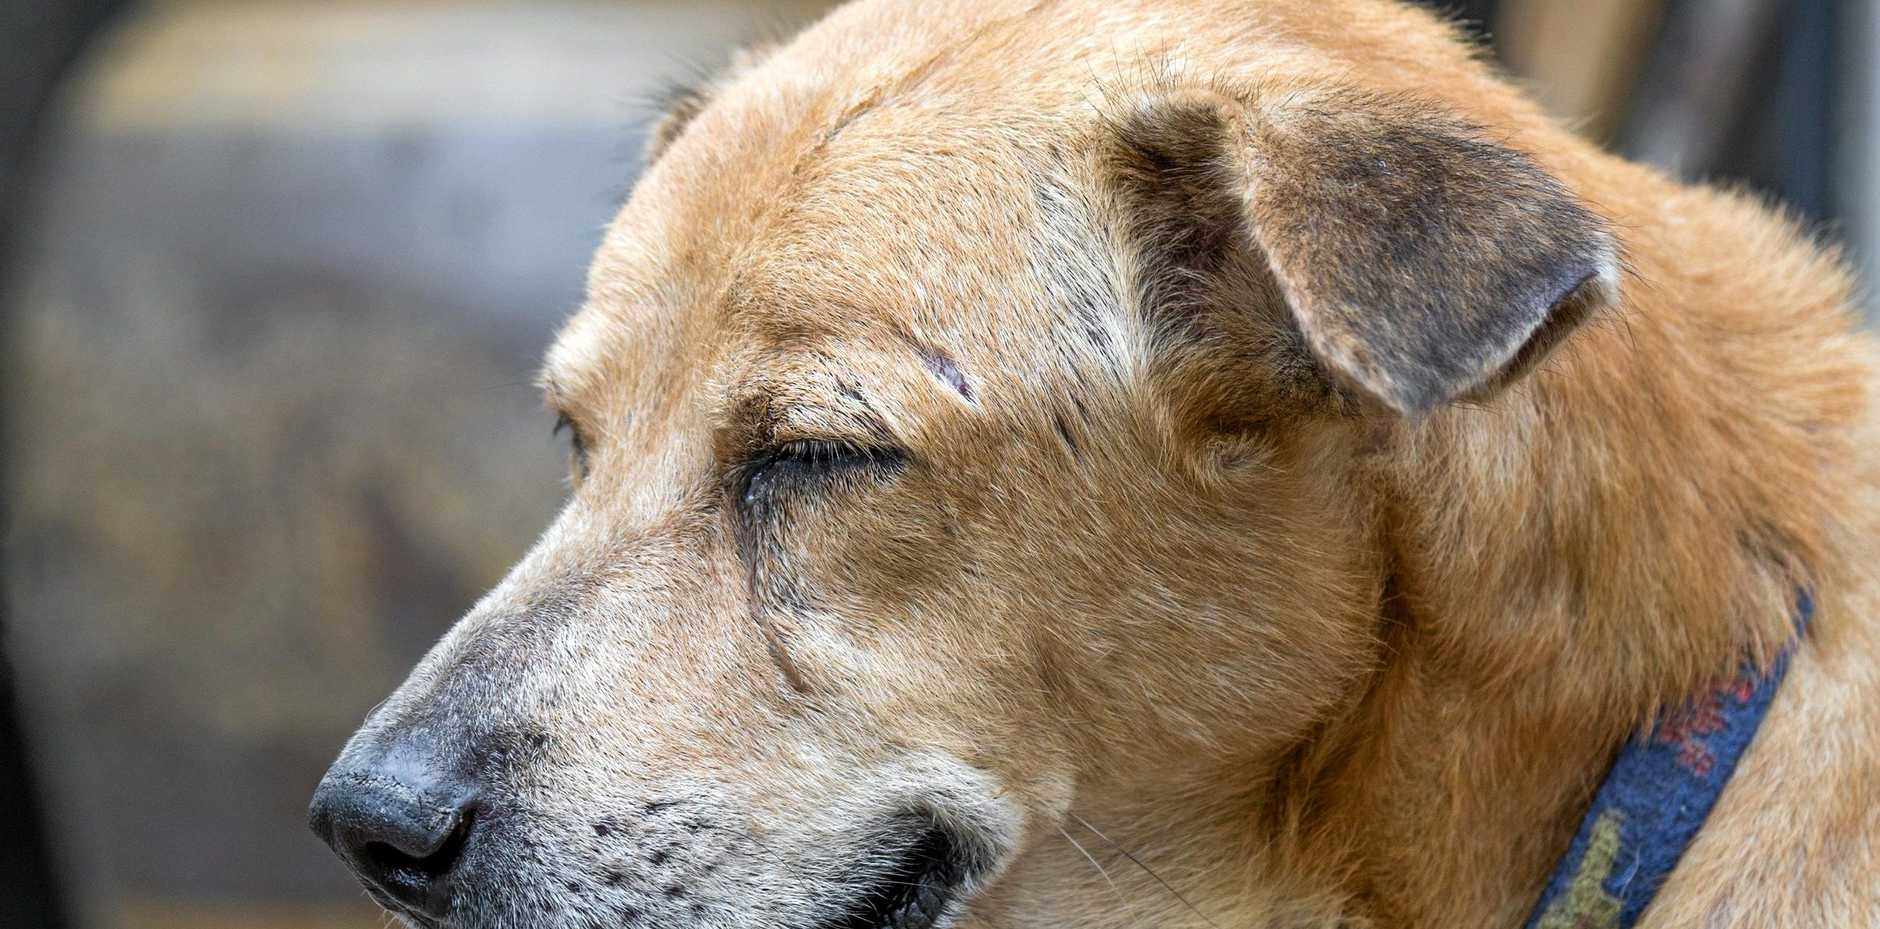 A report released by RSPCA has ranked the Sunshine Coast suburbs which received the most complaints of animal abuse.